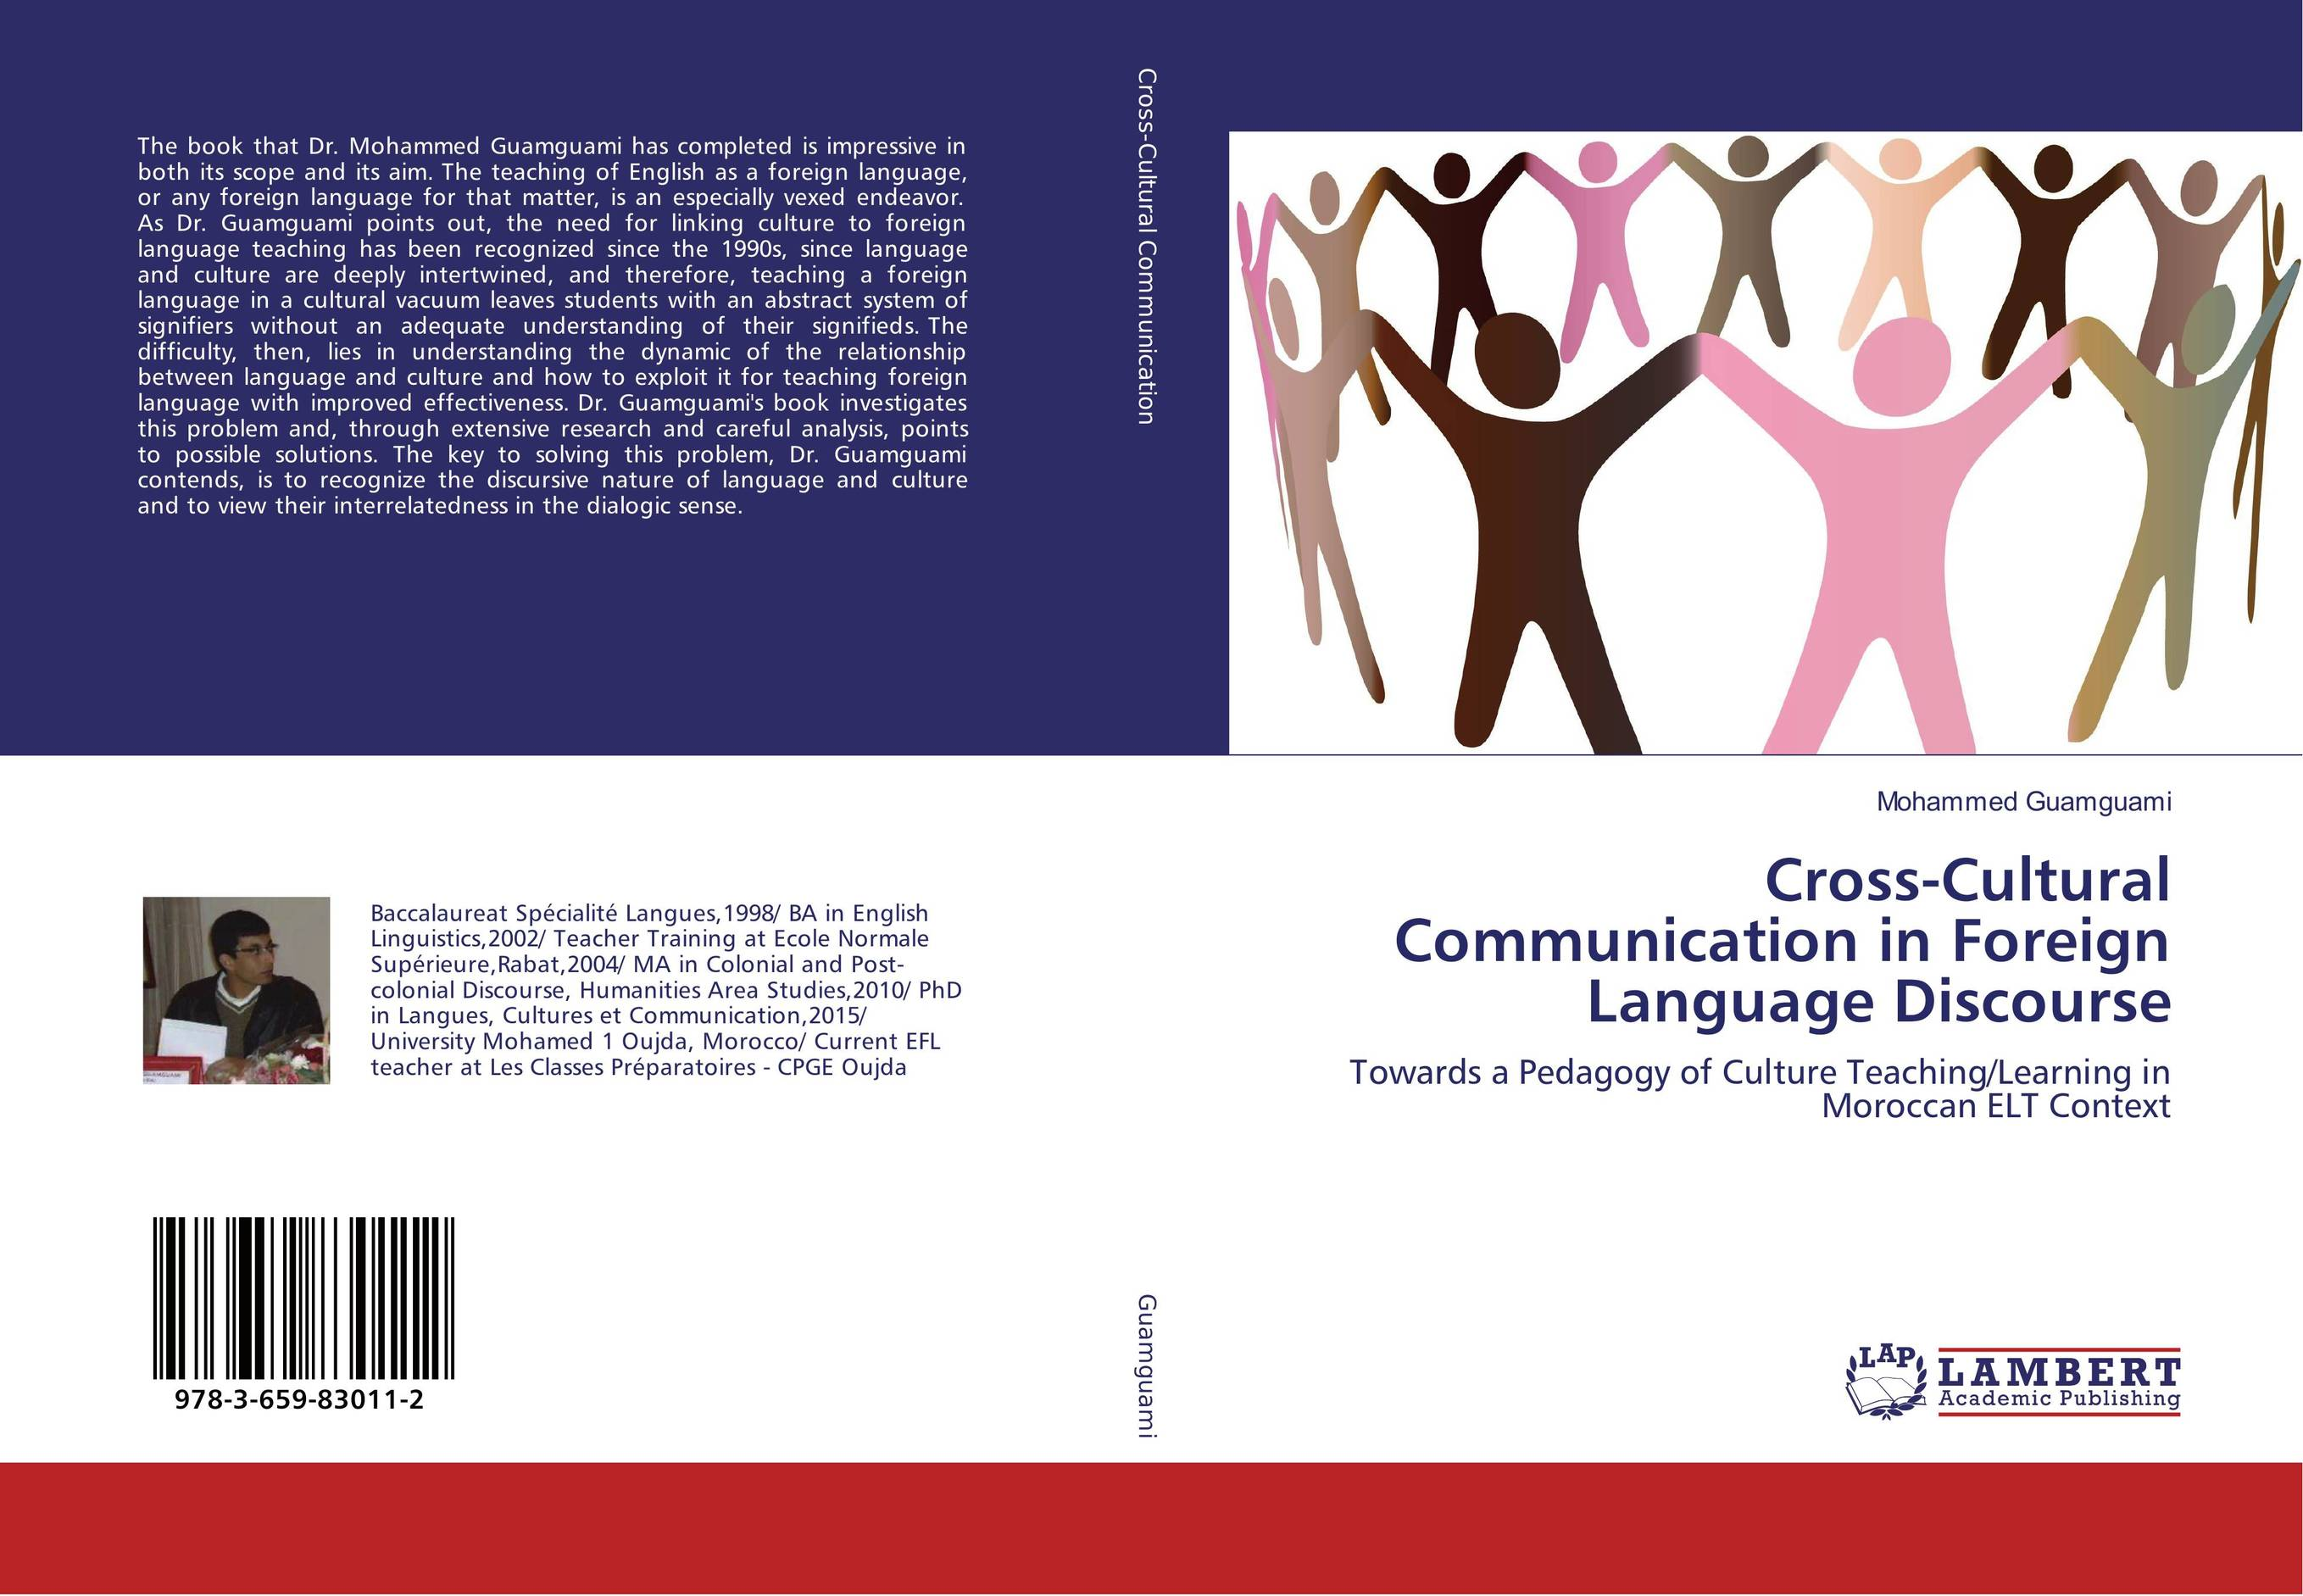 Cross-Cultural Communication in Foreign Language Discourse e hutchins culture and inference – a trobriand case study